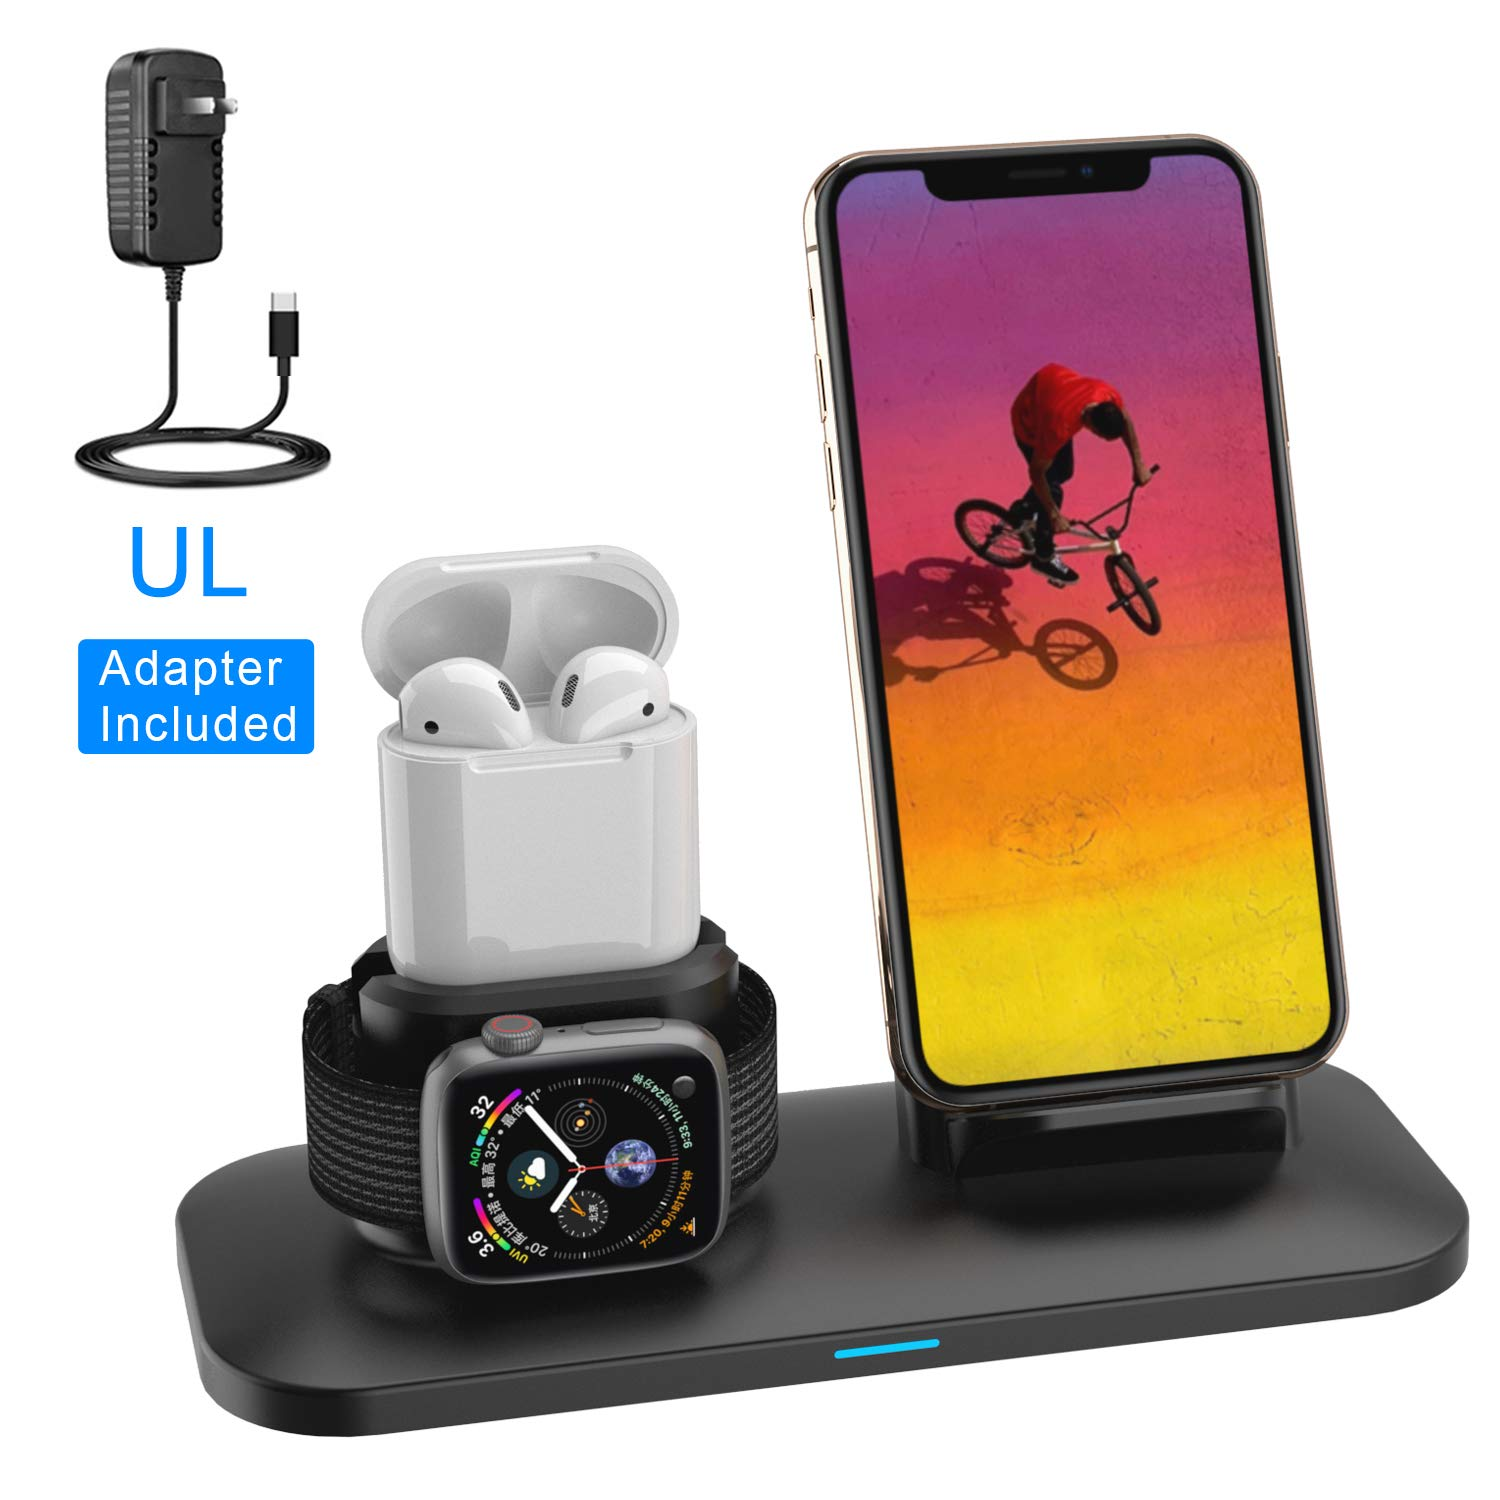 Wireless Charger, 3 in 1 Charging Station for Apple, Wireless Charging Stand Apple Watch Charger for Apple Watch and iPhone Airpod Compatible for iPhone X/XS/XR/Xs Max/8 Plus iWatch 4 3 2 1 Airpods1 2 by XDODD